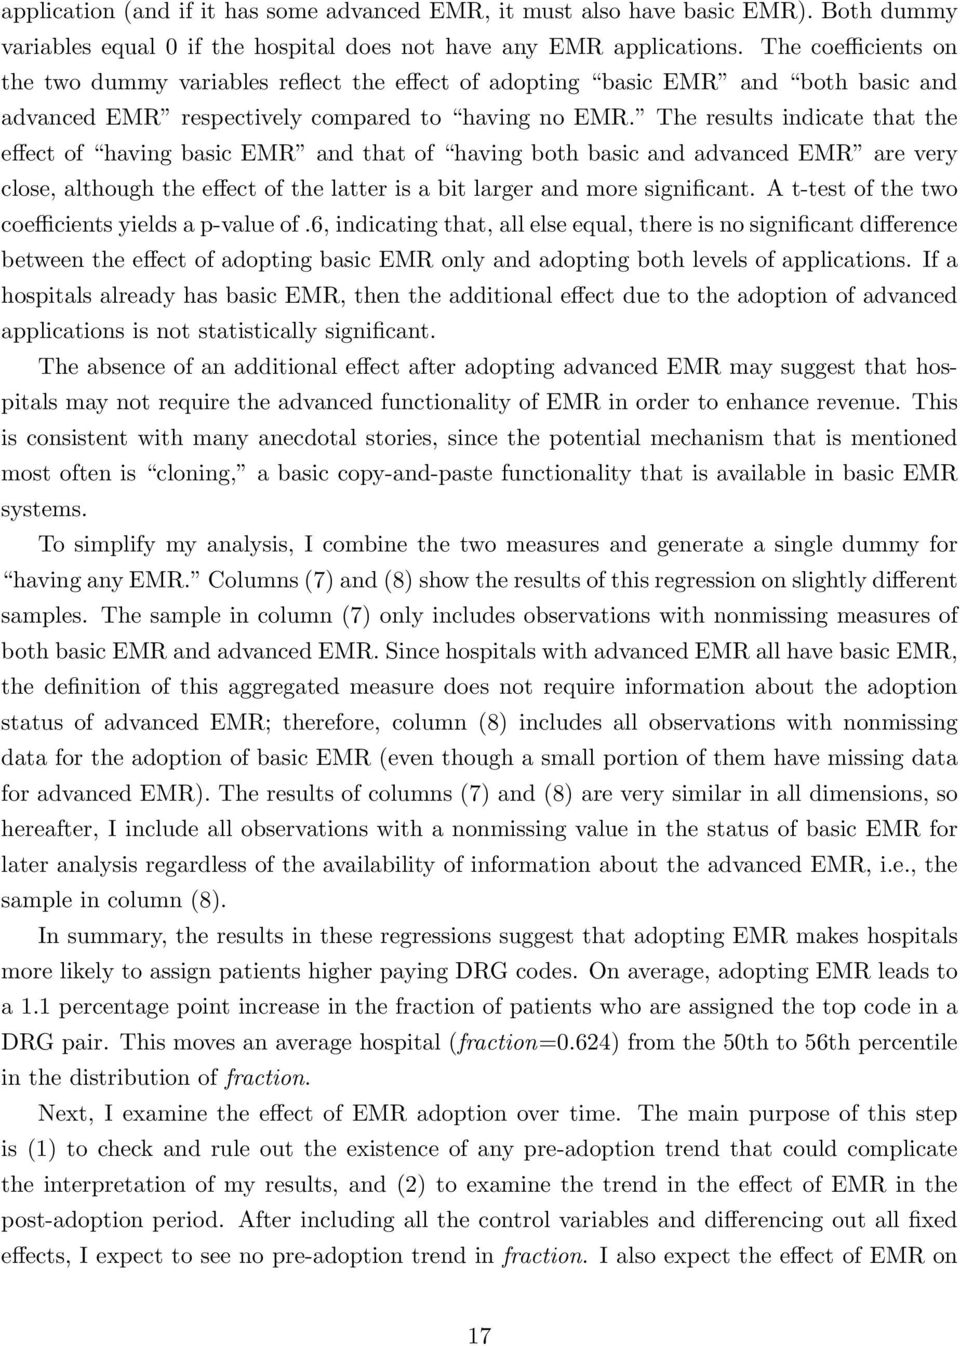 The results indicate that the effect of having basic EMR and that of having both basic and advanced EMR are very close, although the effect of the latter is a bit larger and more significant.